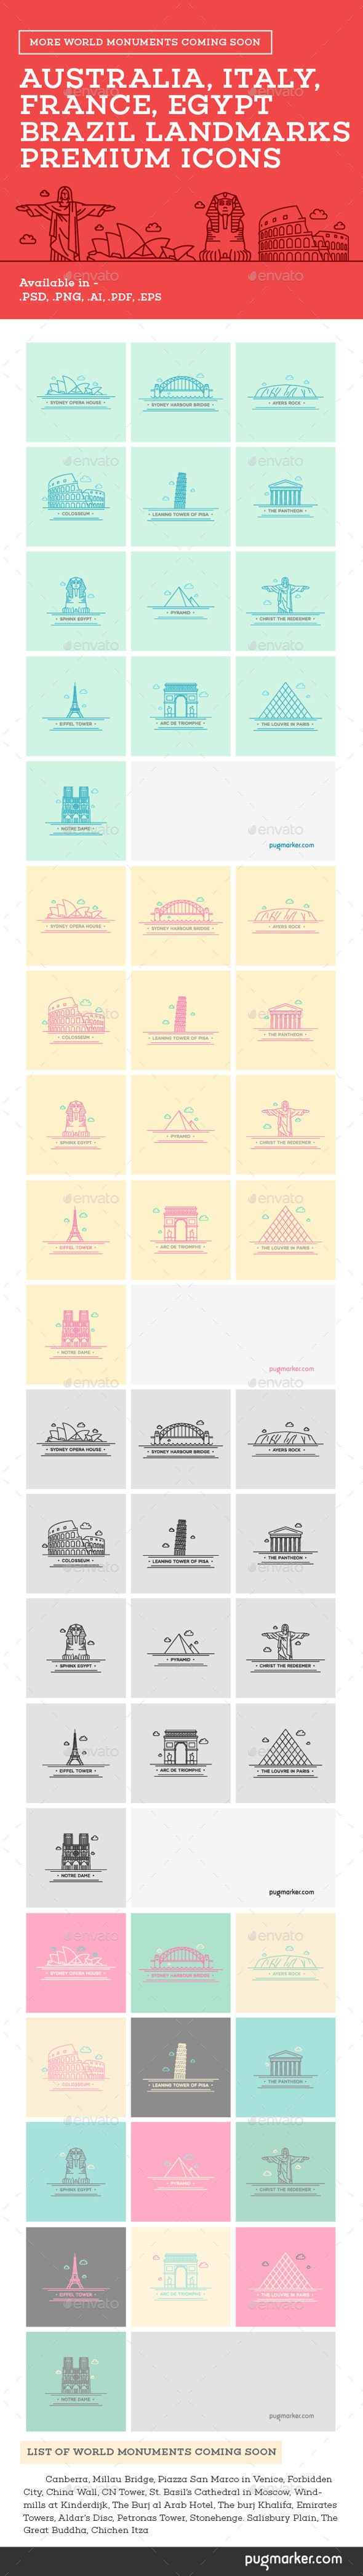 GraphicRiver World Landmarks Premium Icons 10655596